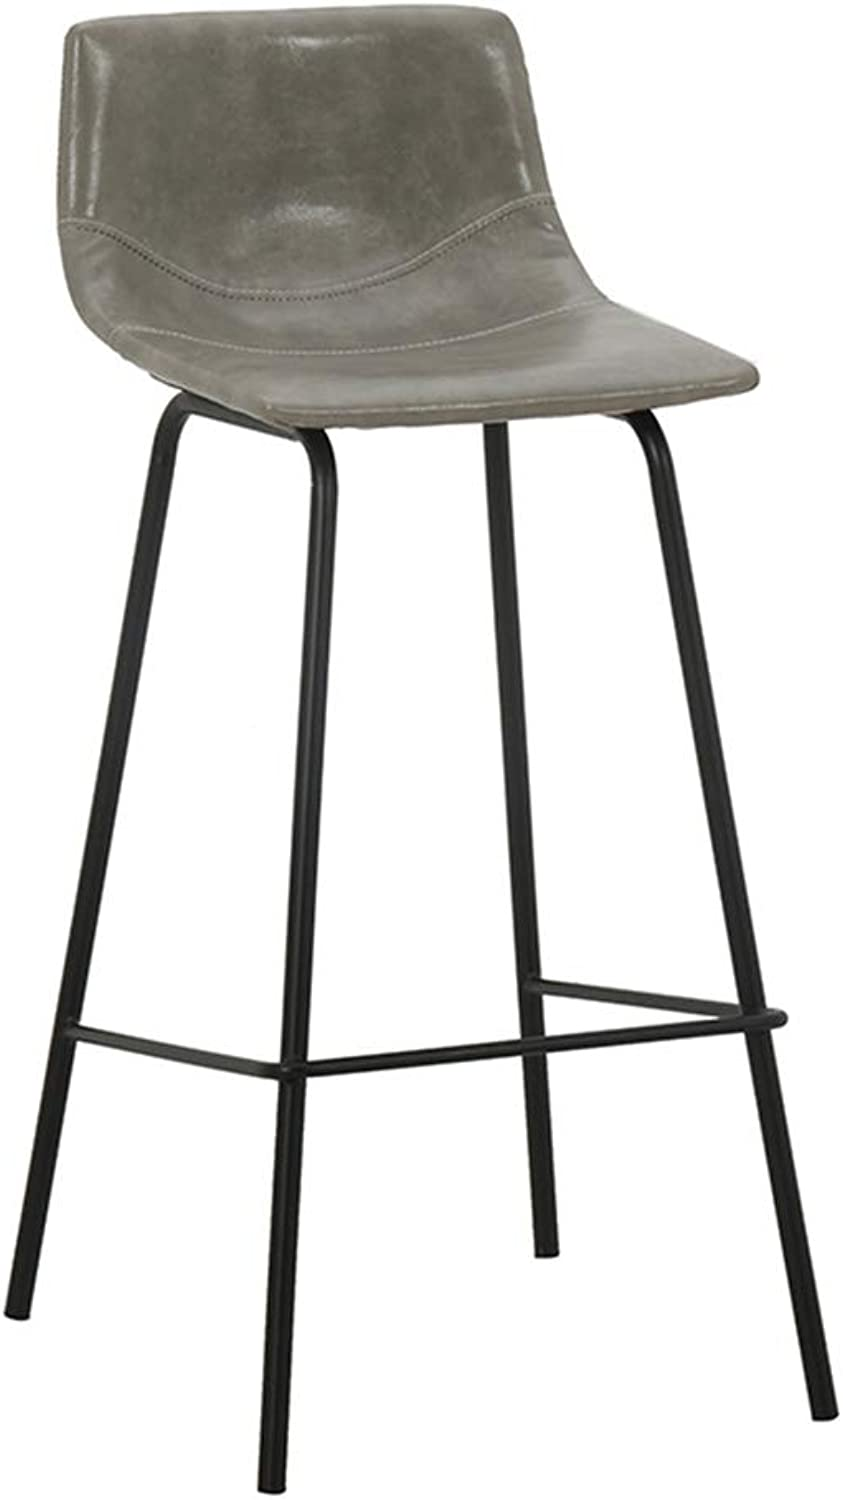 Barstools DOOST bar stools, Steel Legs, Leather Seats, Counter Height bar Chairs, Bars, counters, cafes, Kitchens, Home Seats